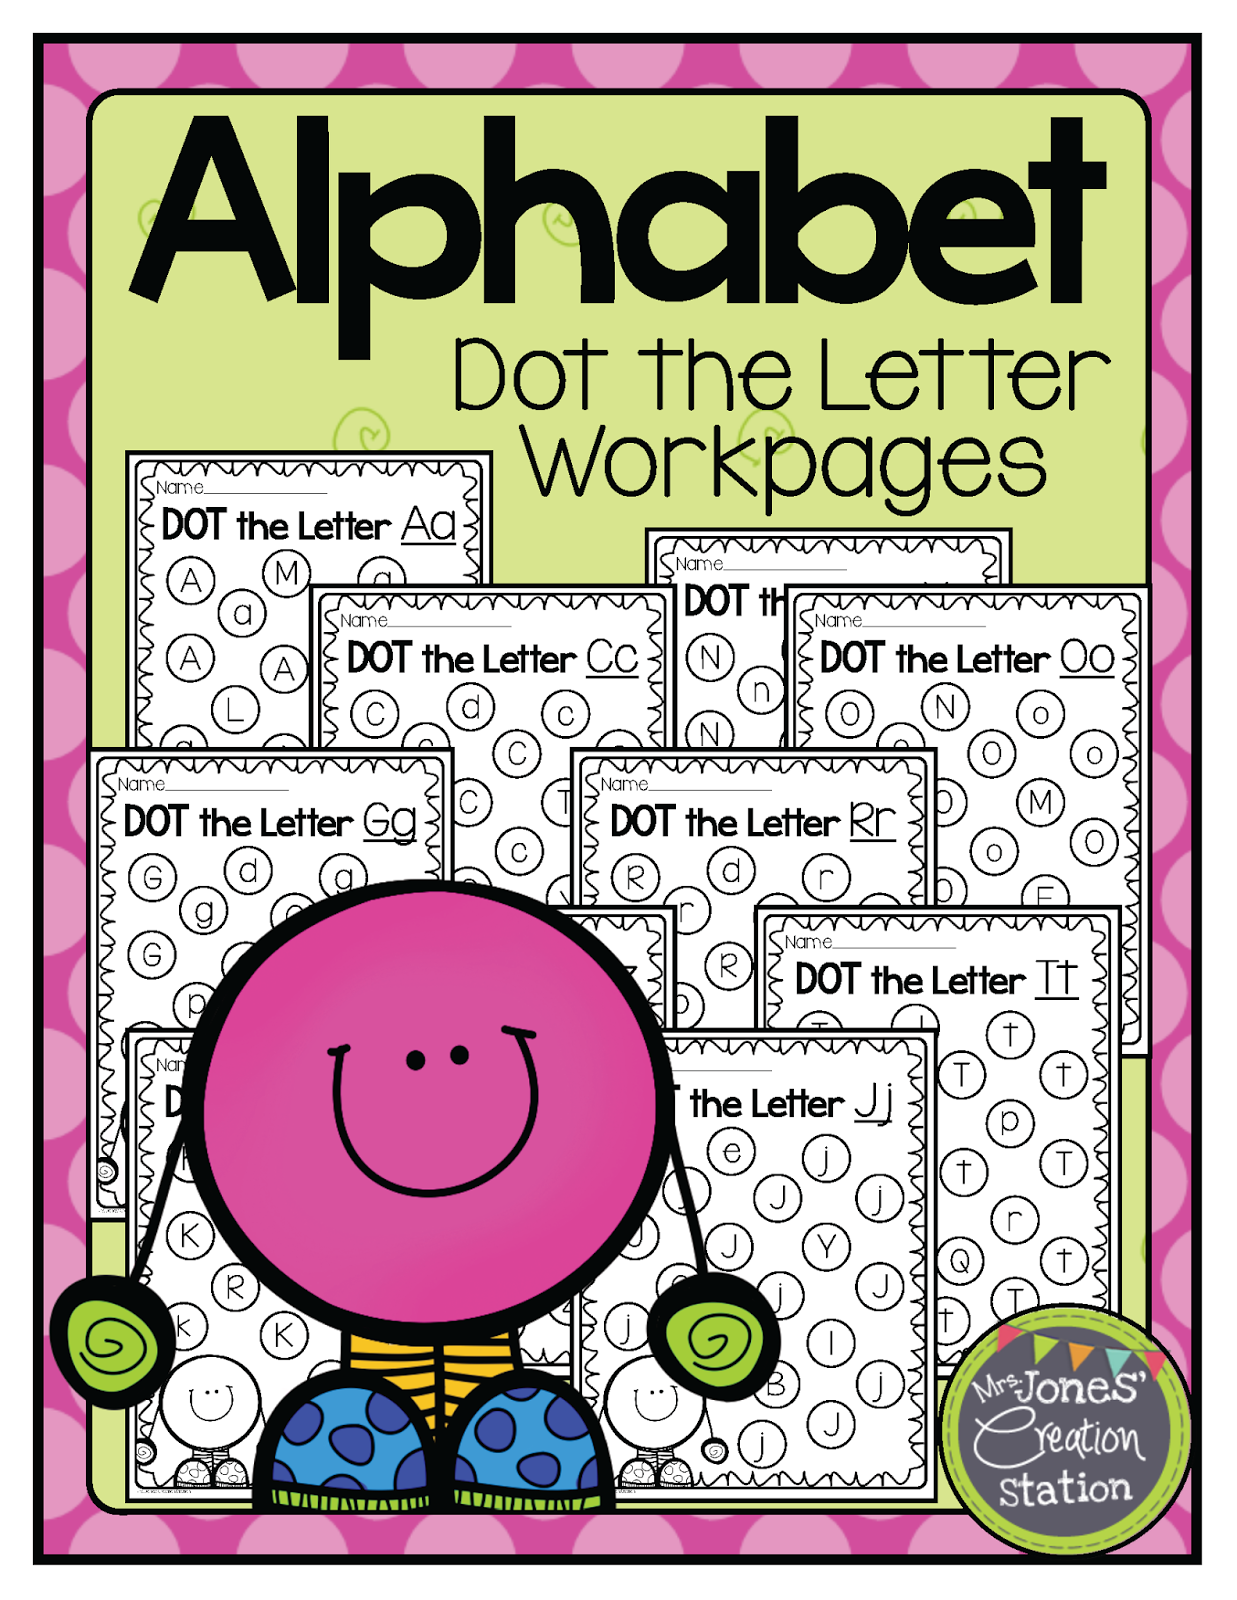 http://www.teacherspayteachers.com/Product/Alphabet-Dot-the-Letter-Workpages-1210545